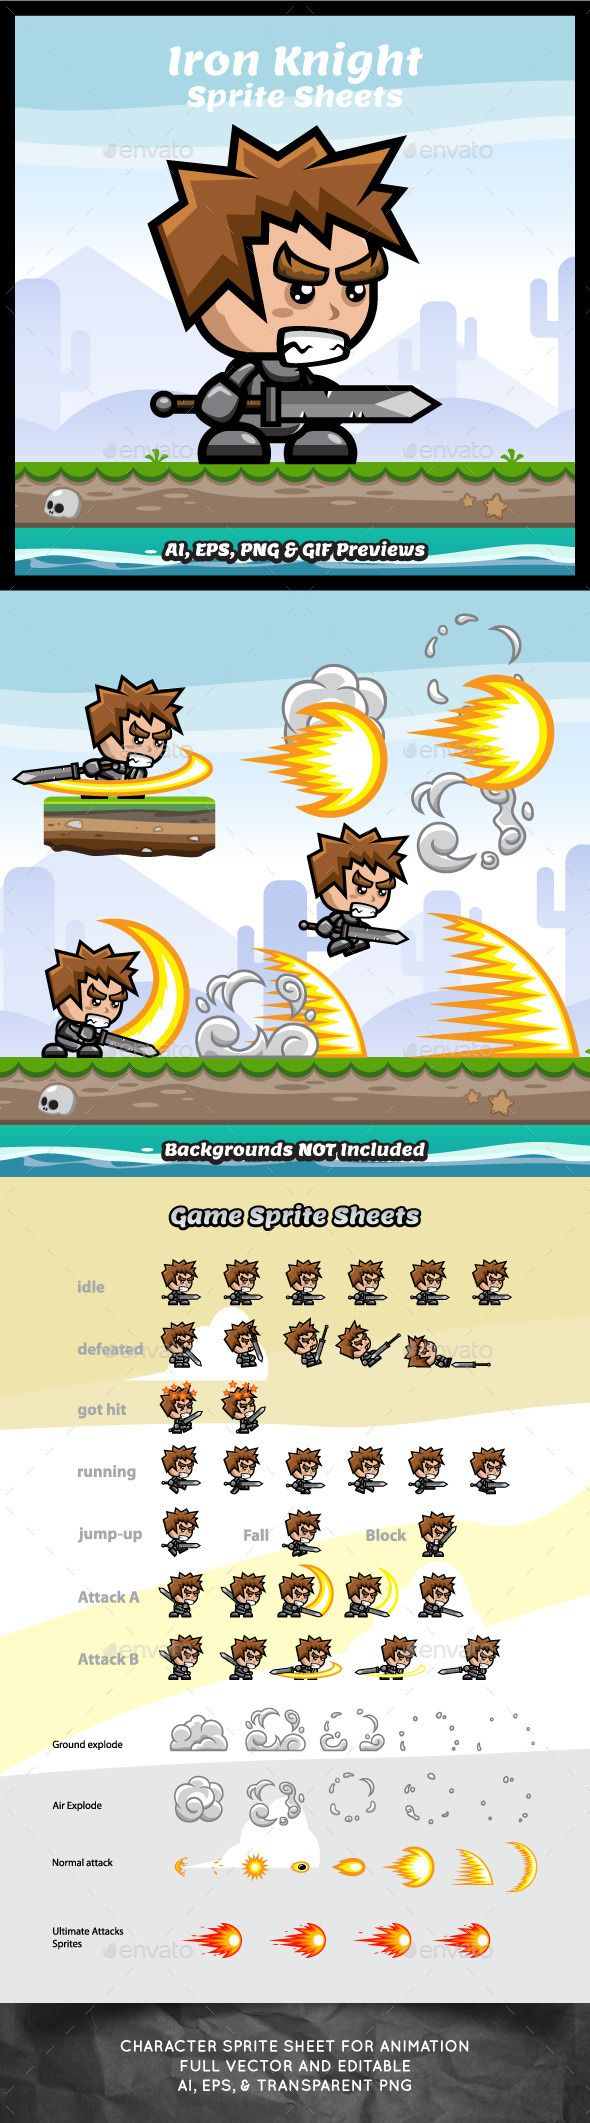 Iron Knight Game Character Sprite Sheets — Vector EPS #game character #soldier • Download here → https://graphicriver.net/item/iron-knight-game-character-sprite-sheets/9276313?ref=pxcr